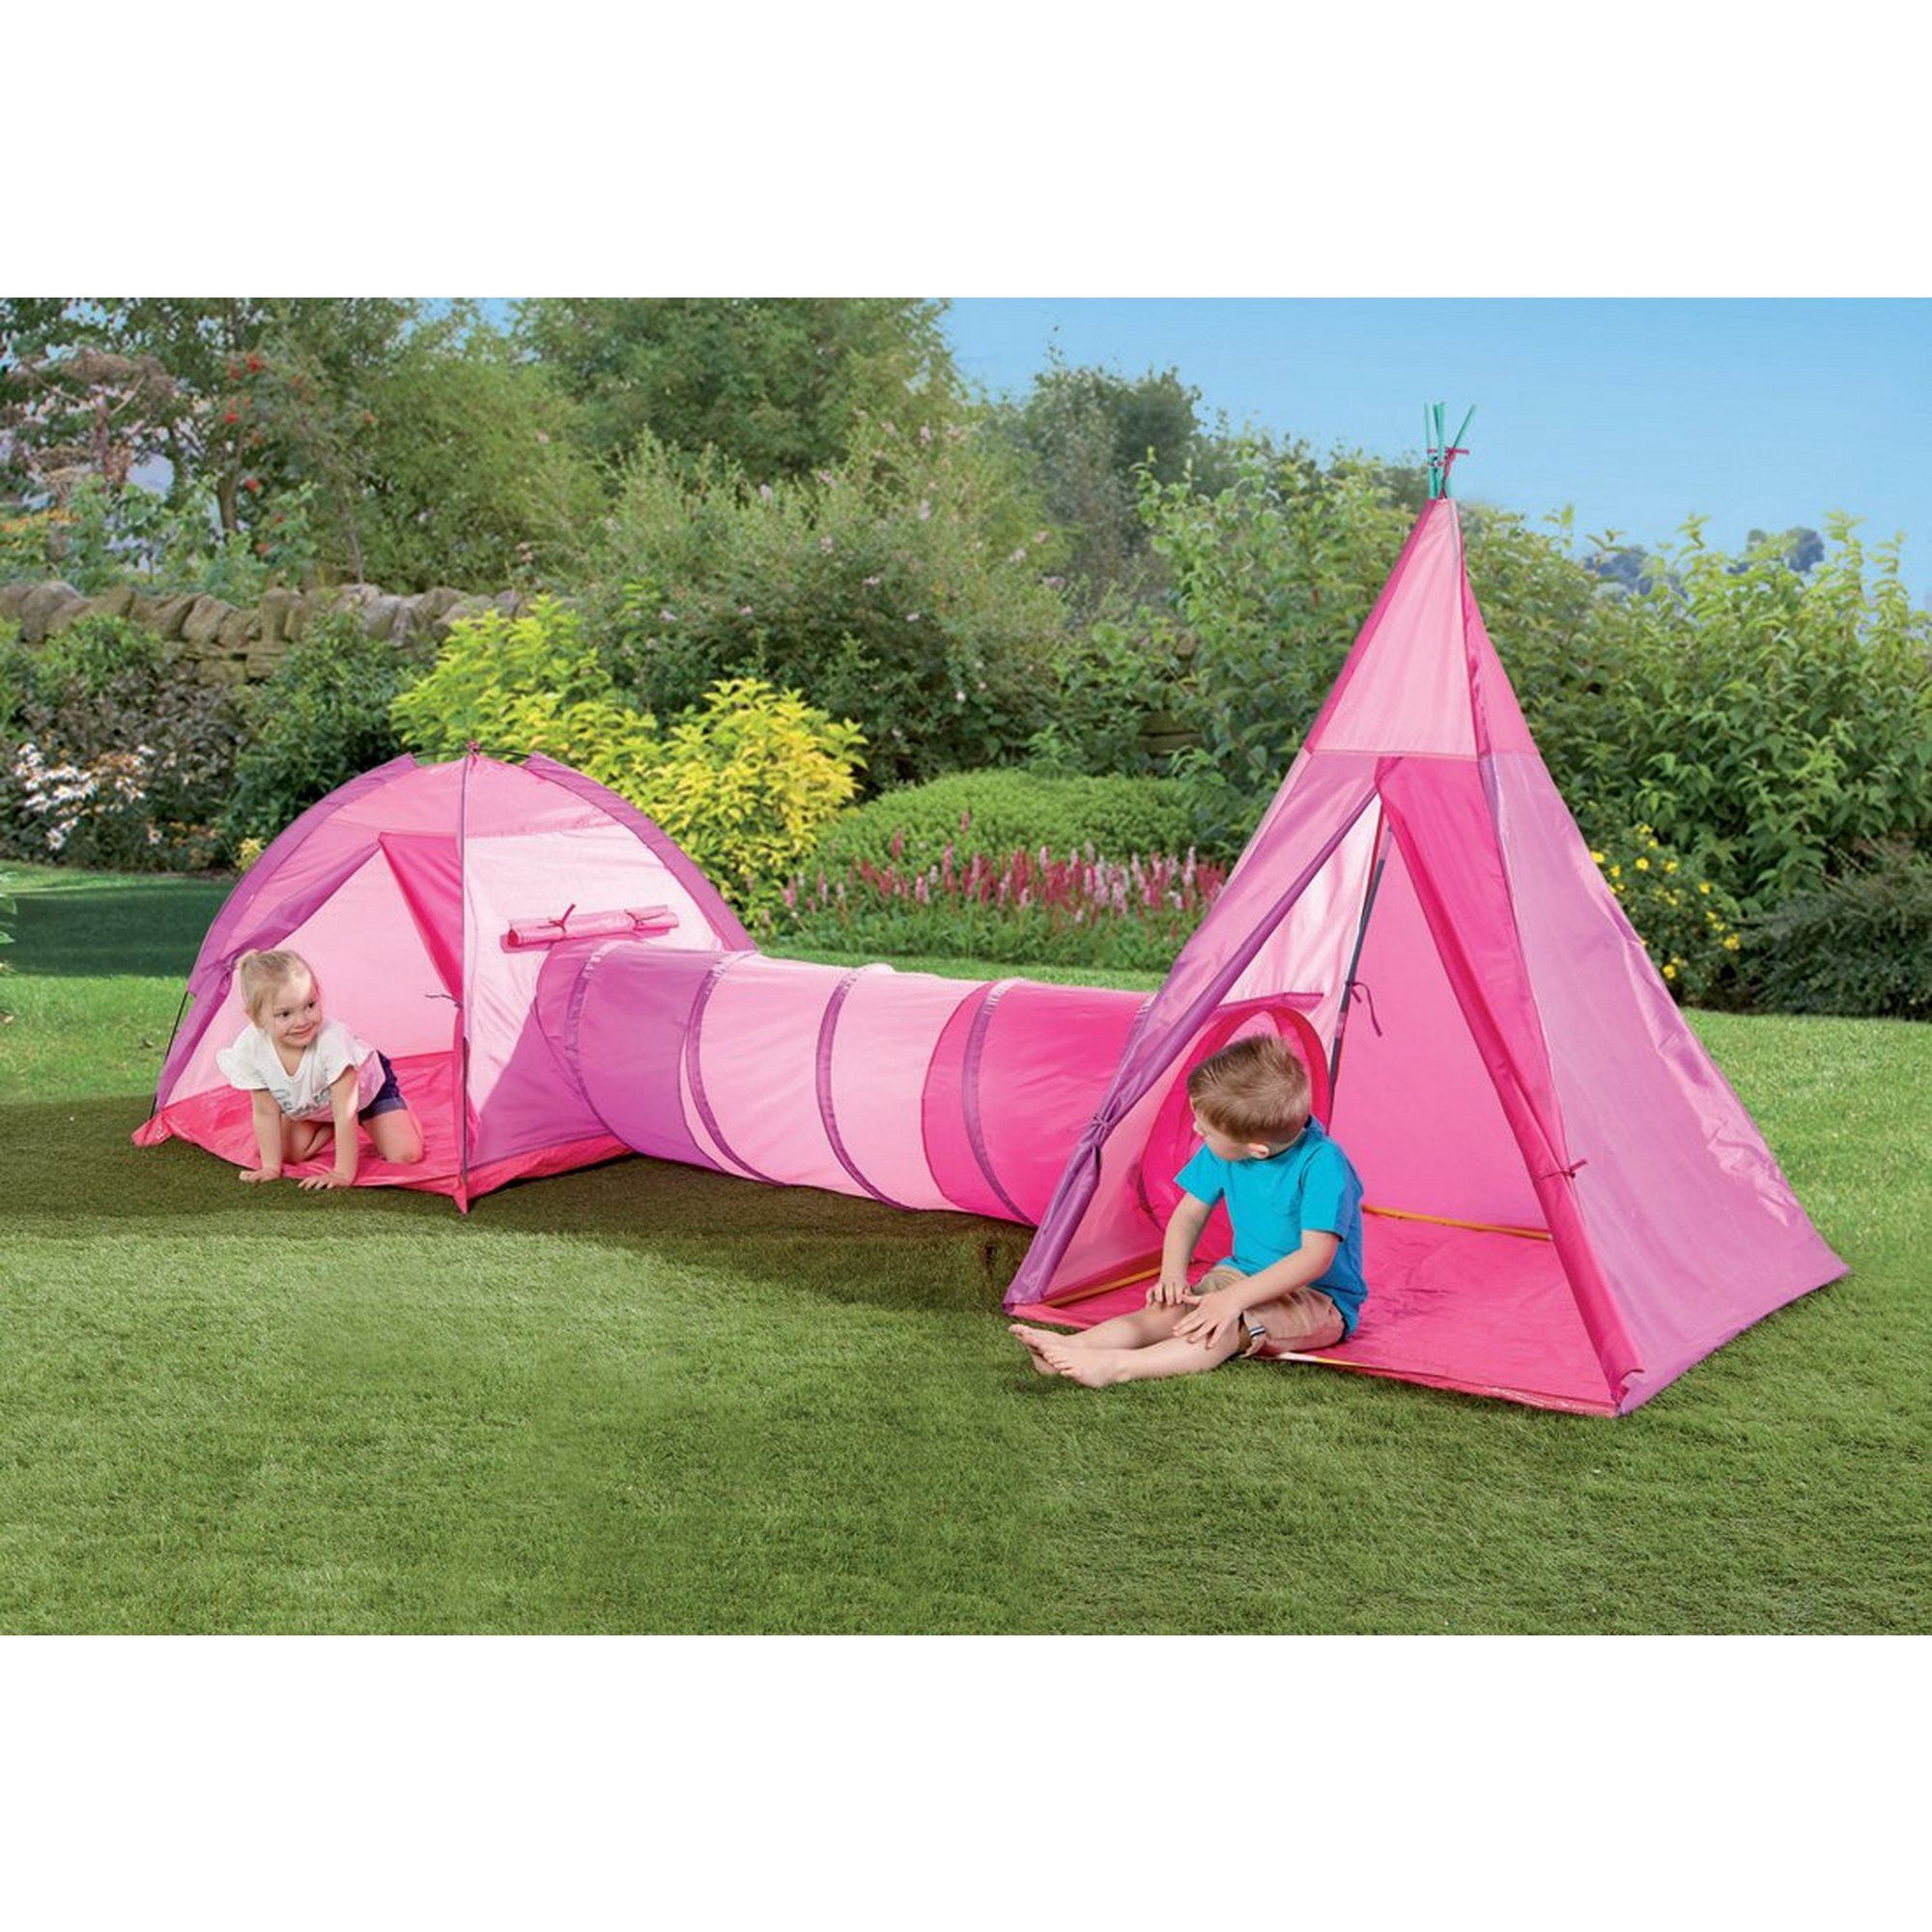 Image of 3-in-1 Adventure Play Pink Tent